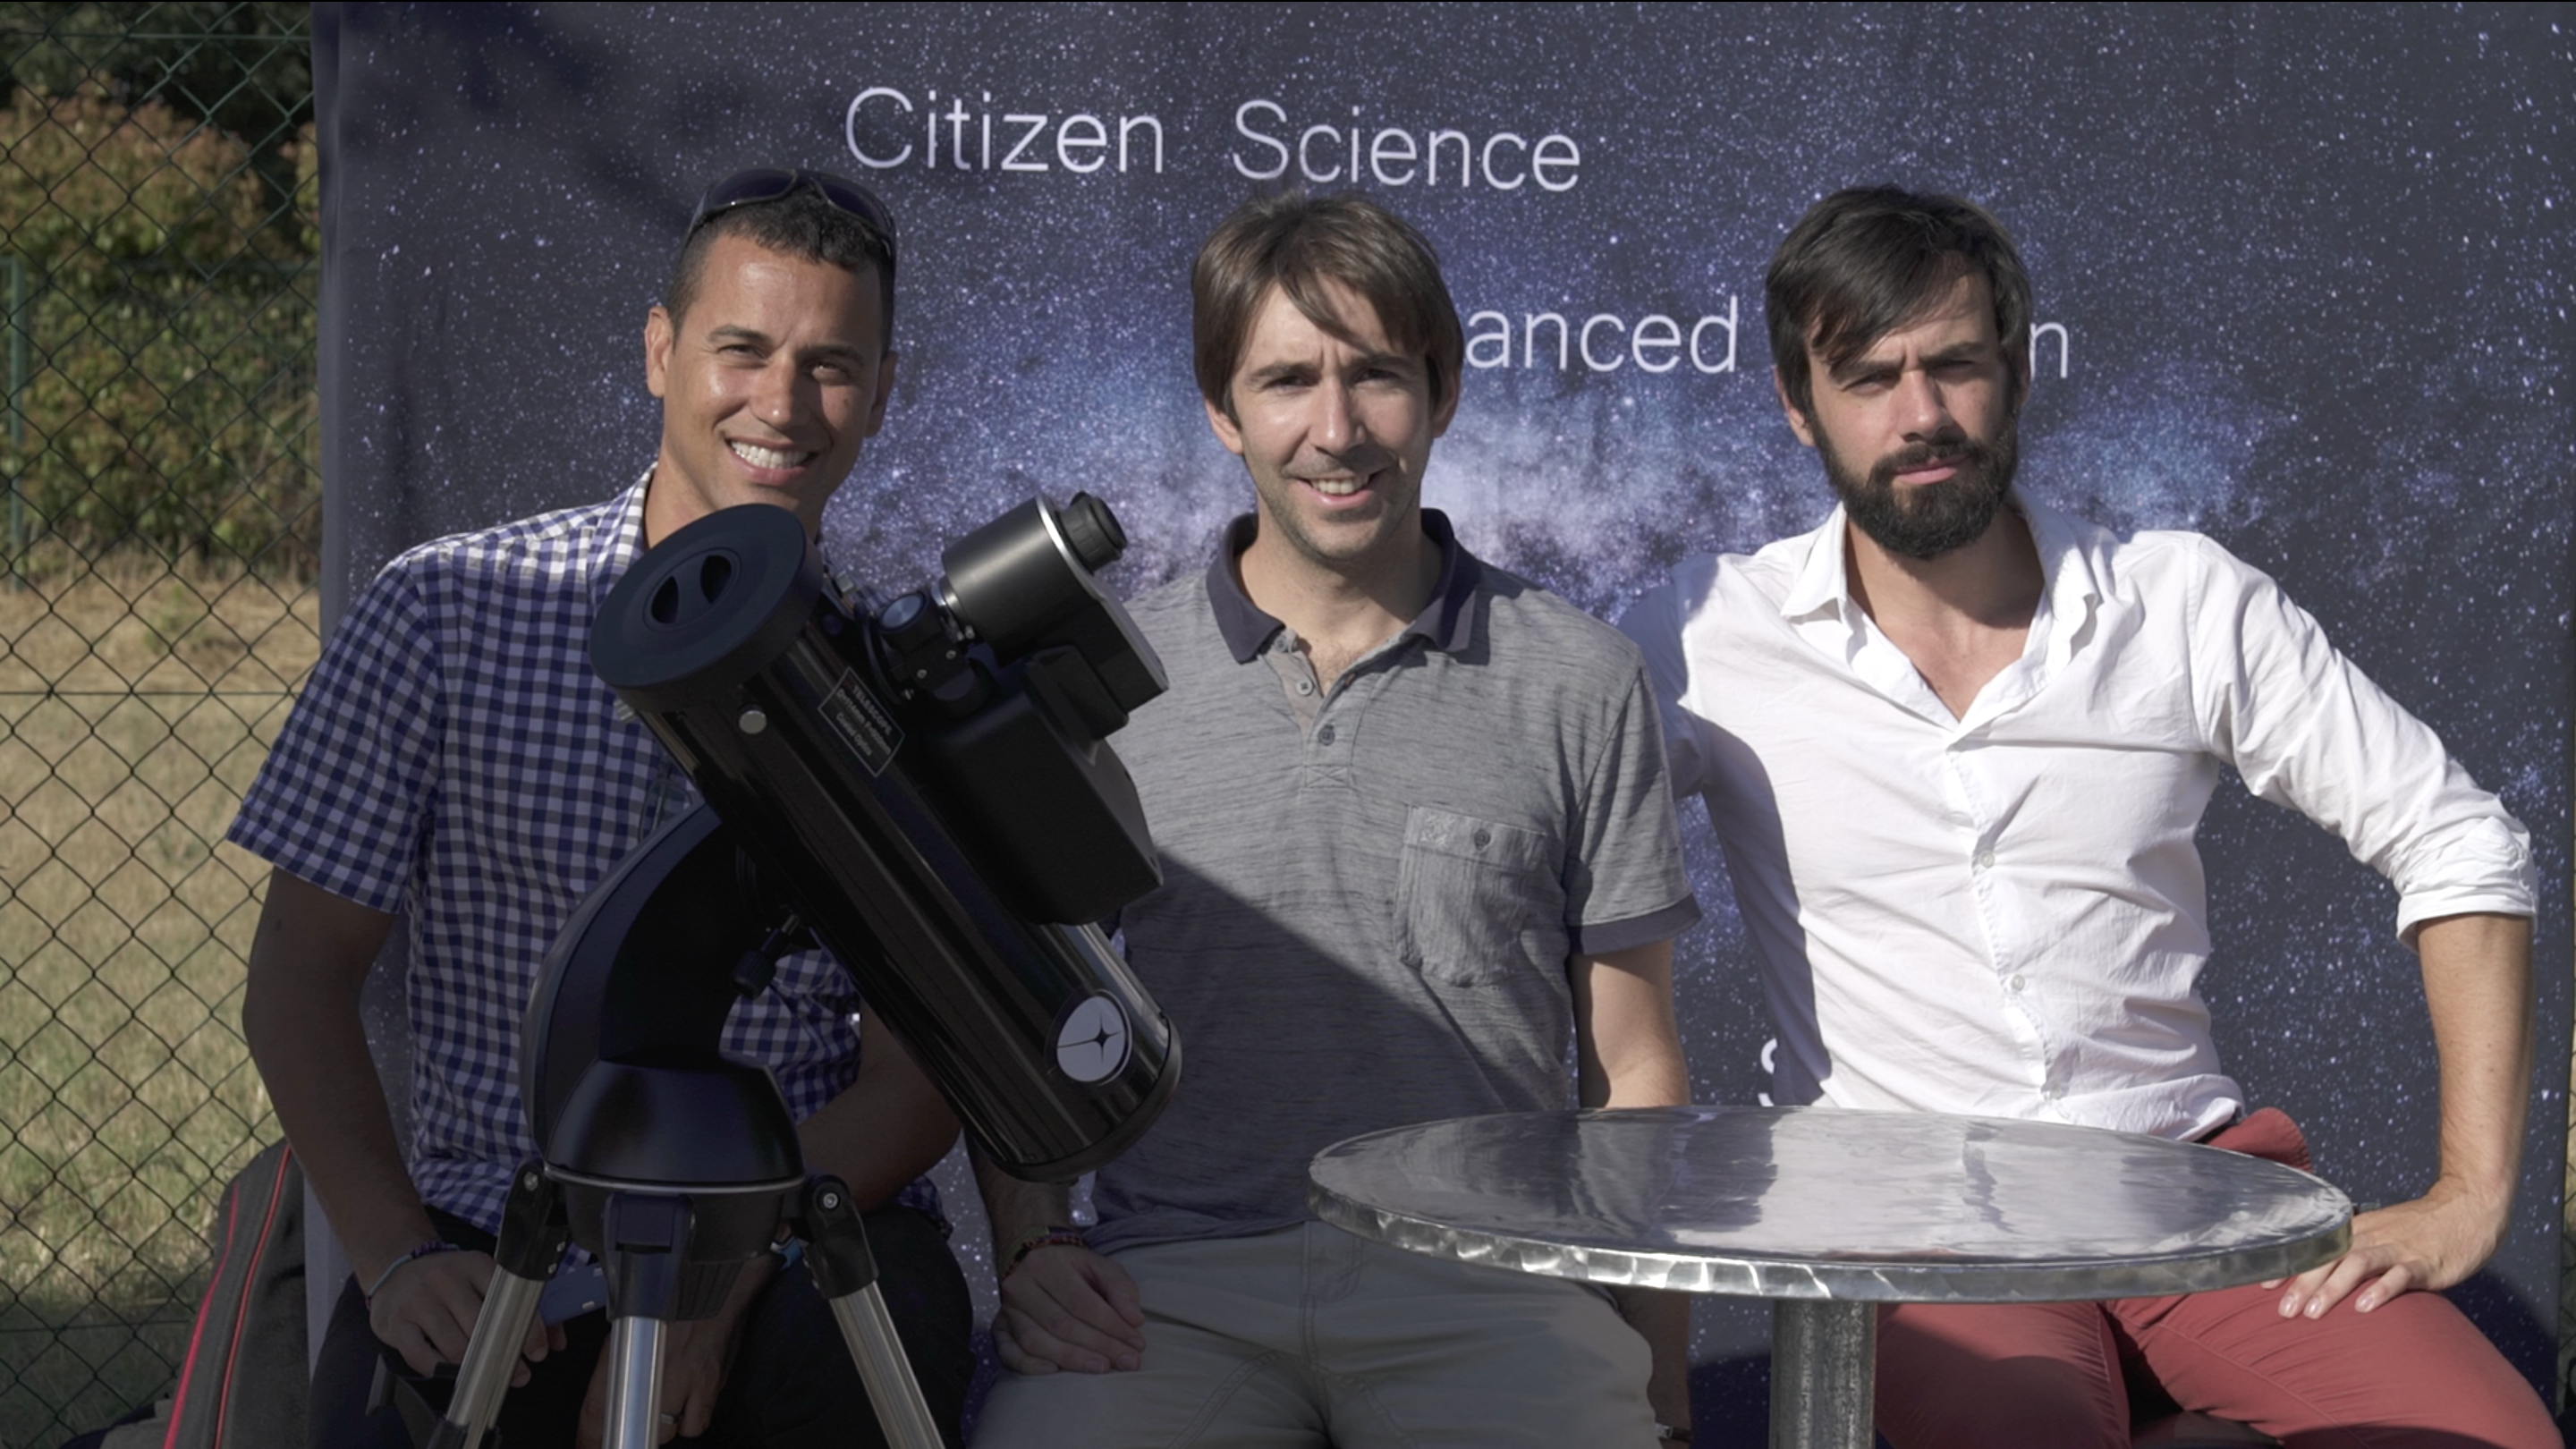 From left to right: Franck Marchis (CSO and SETI Institute astronomer), Arnaud (Chairman and CTO), Laurent (CEO) and the demo prototype shown at Aix-en-Provence, France in June 2017. De izquierda a derecha: Franck Marchis (CSO y astrónomo de SETI Institute), Arnaud (Presidente y| CTO), Laurent (CEO) y el prototipo de demostración mostrado en Aix-en-Provence, Francia, en junio 2017